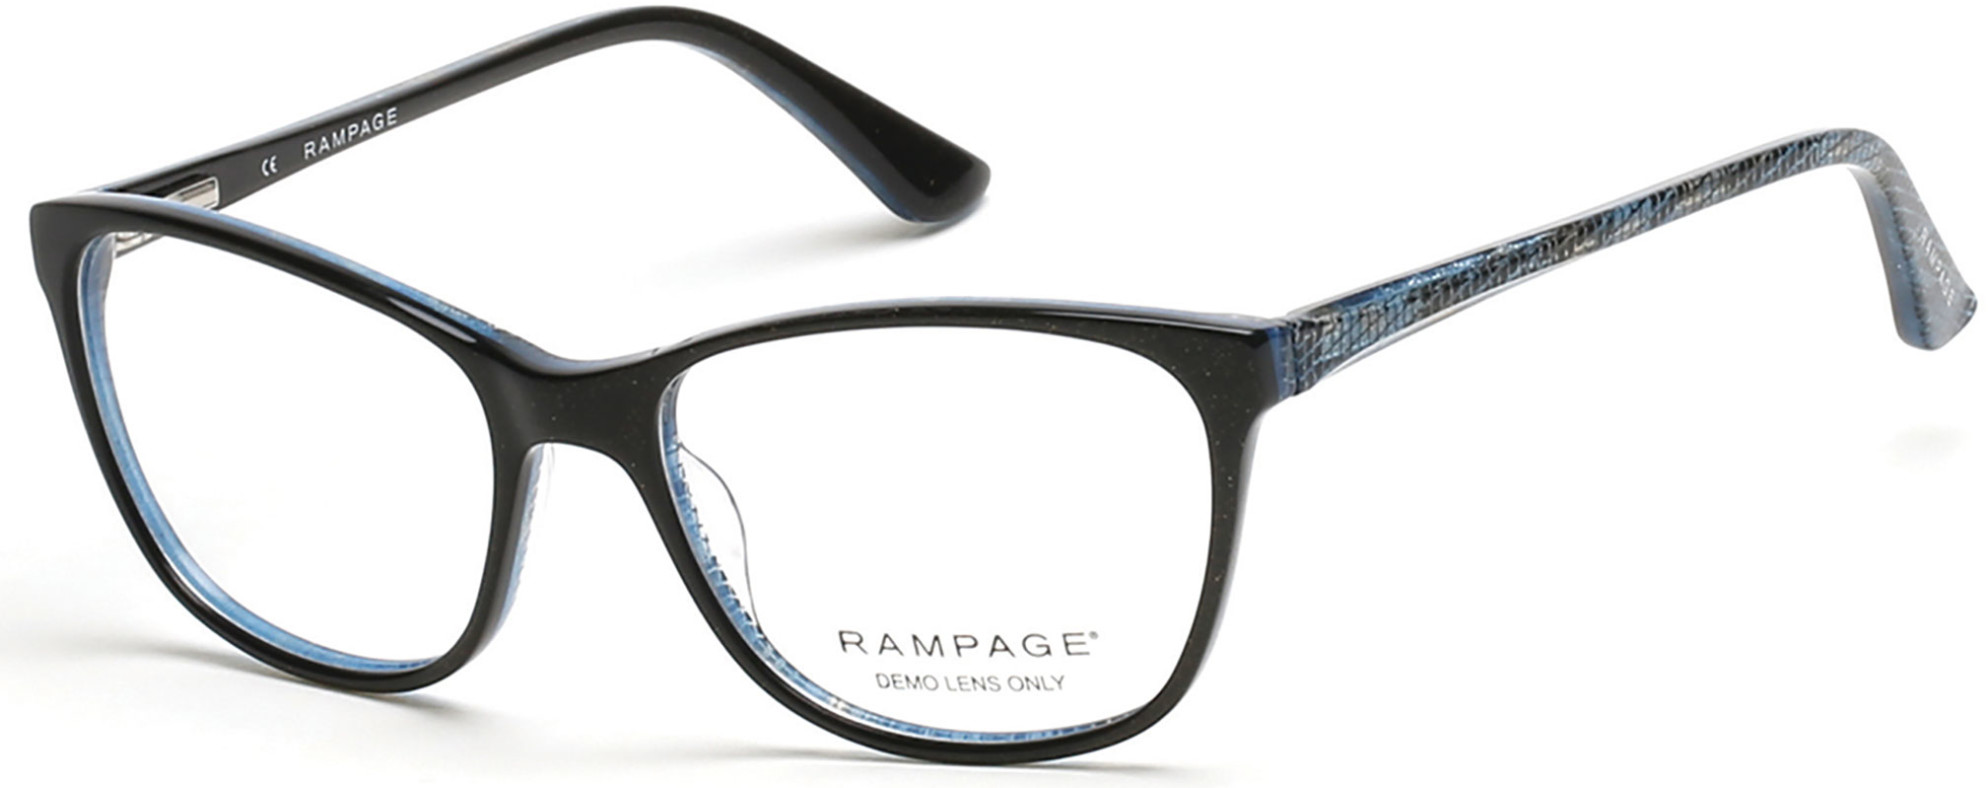 RAMPAGE RA0155 style-color 005 - black/other